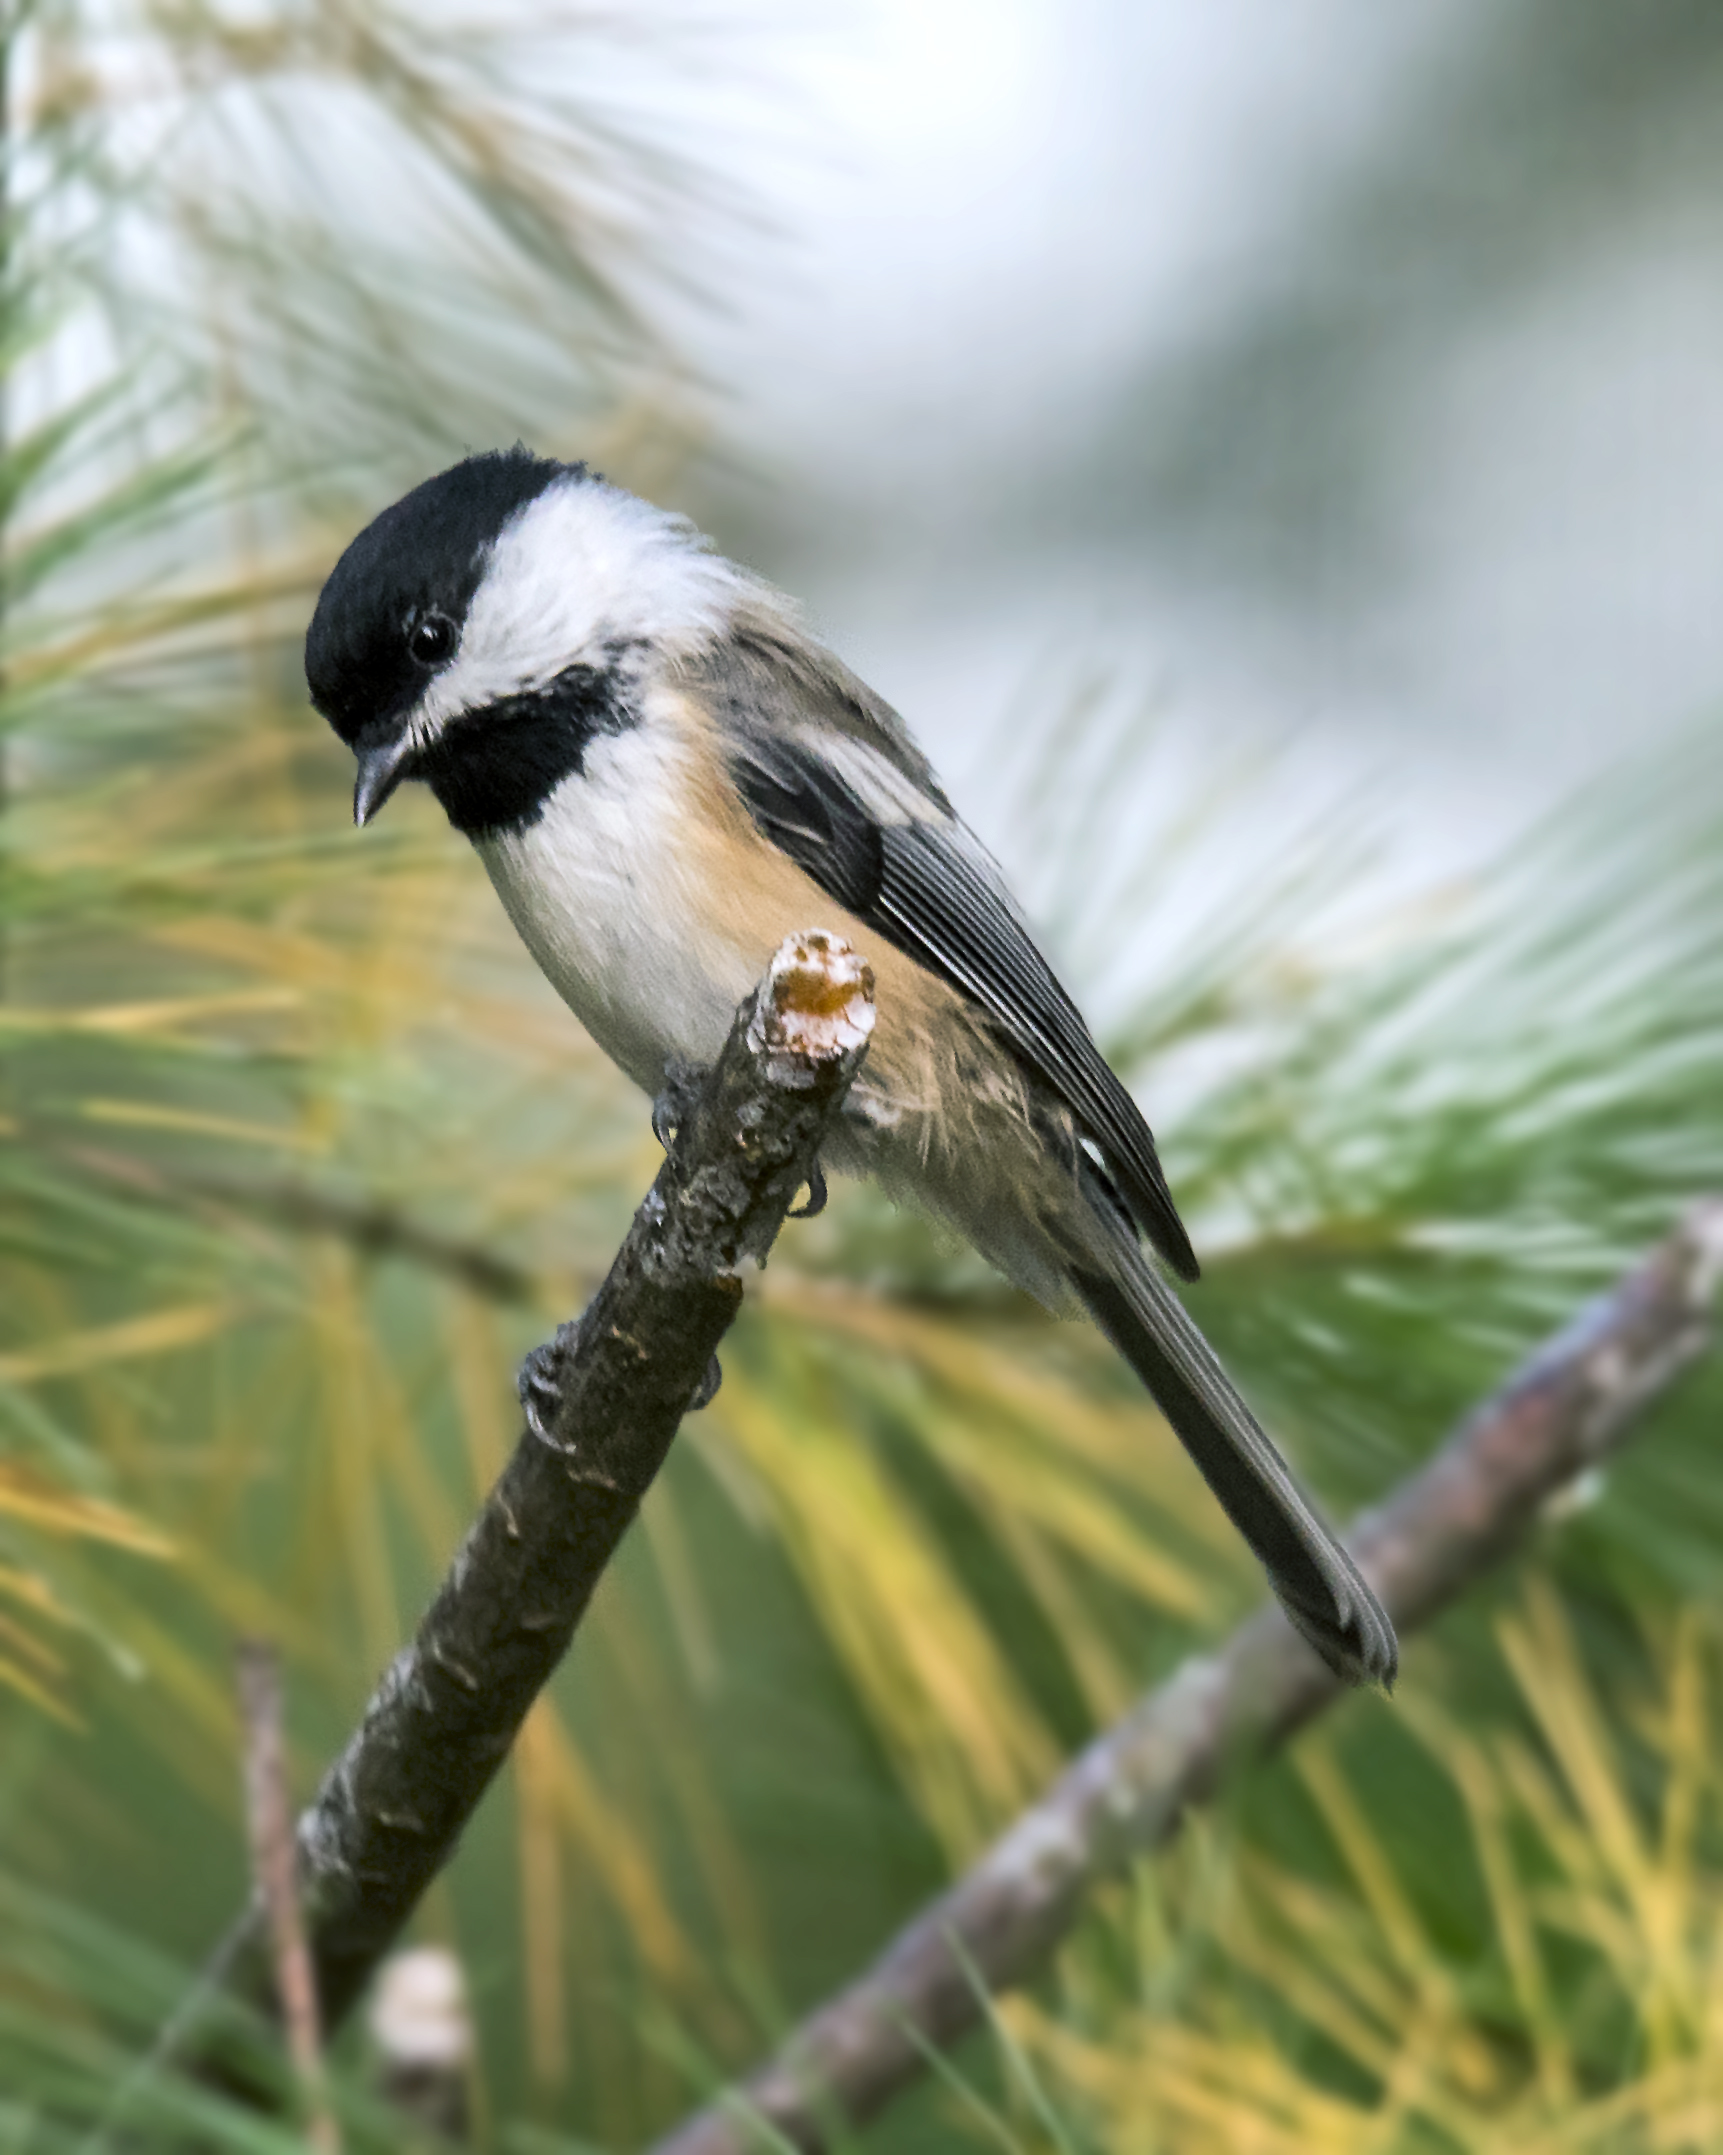 Black-capped Chickadees use at least 13 different vocalizations to communicate complex information and warn other birds about threats in dense vegetation. Photo courtesy of Warren Lynn.